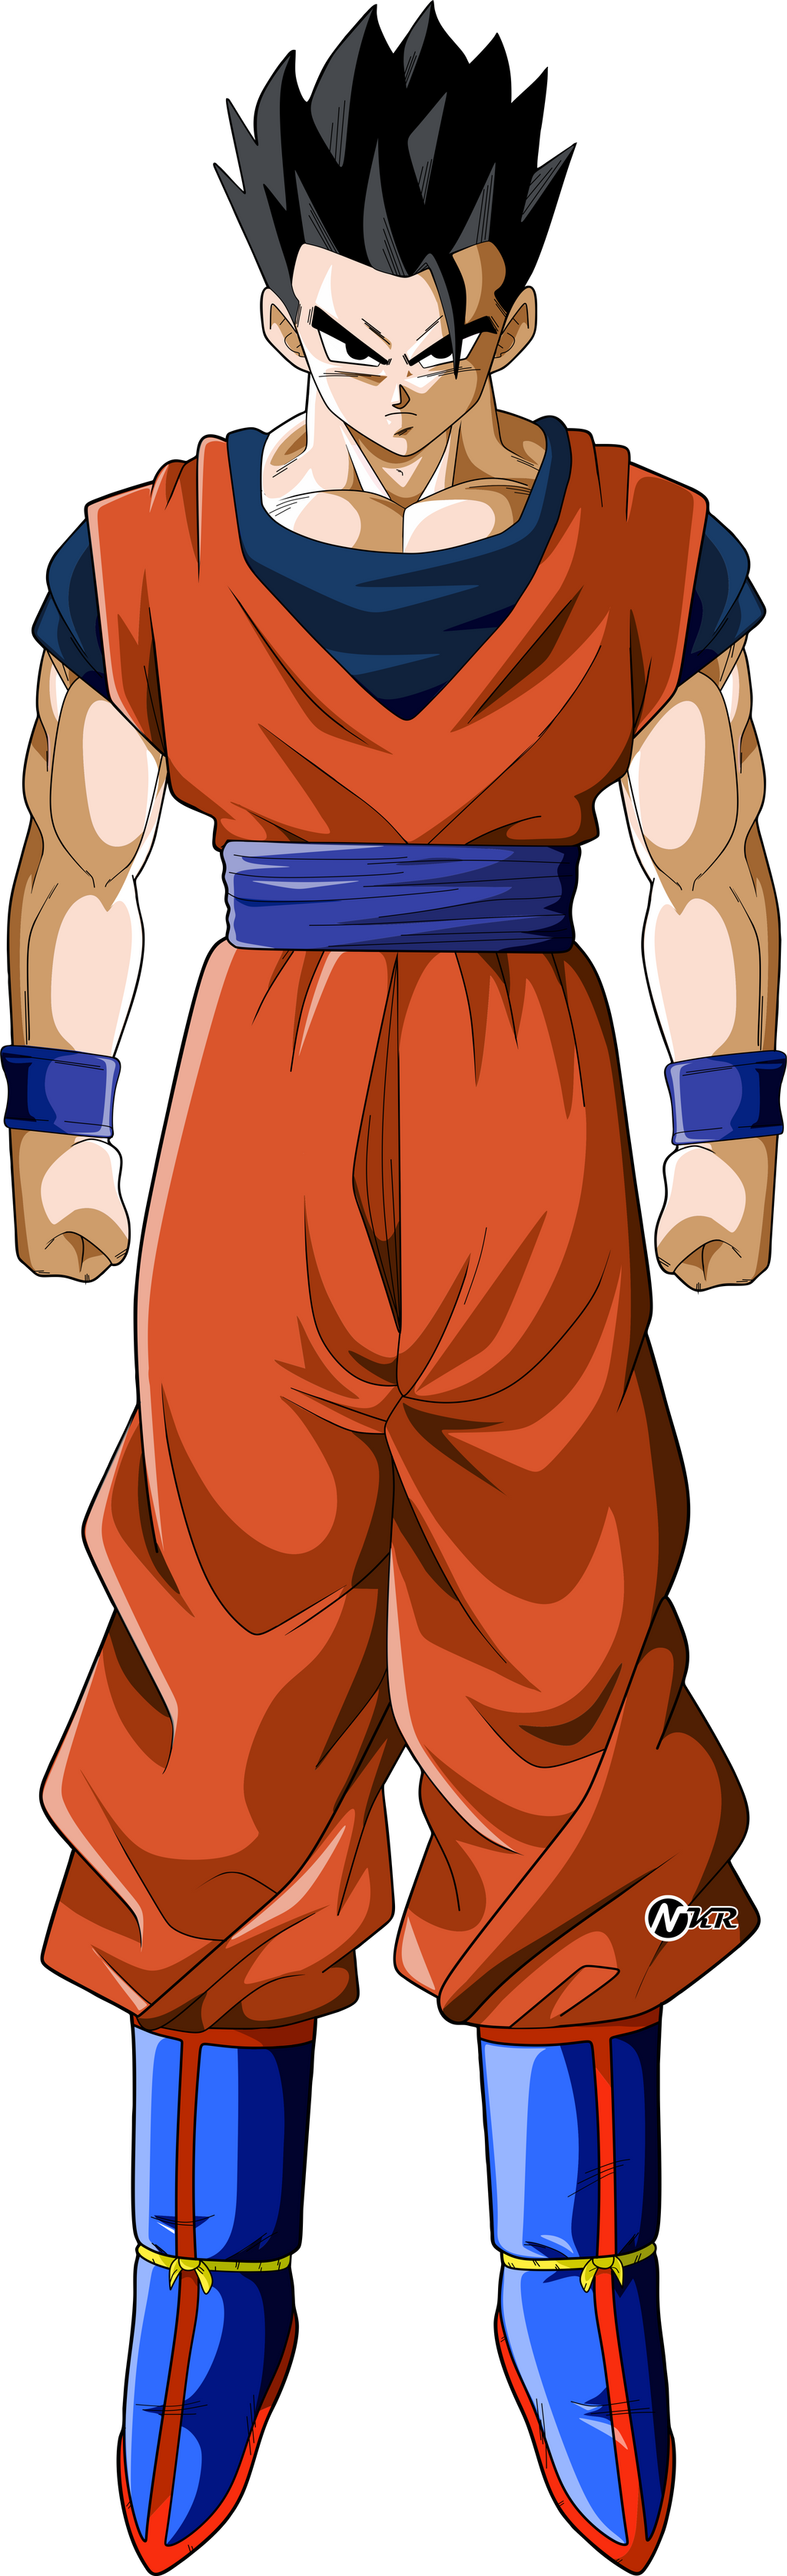 Dragon ball z coloring pages bardock - Dragon ball z gohan images ...